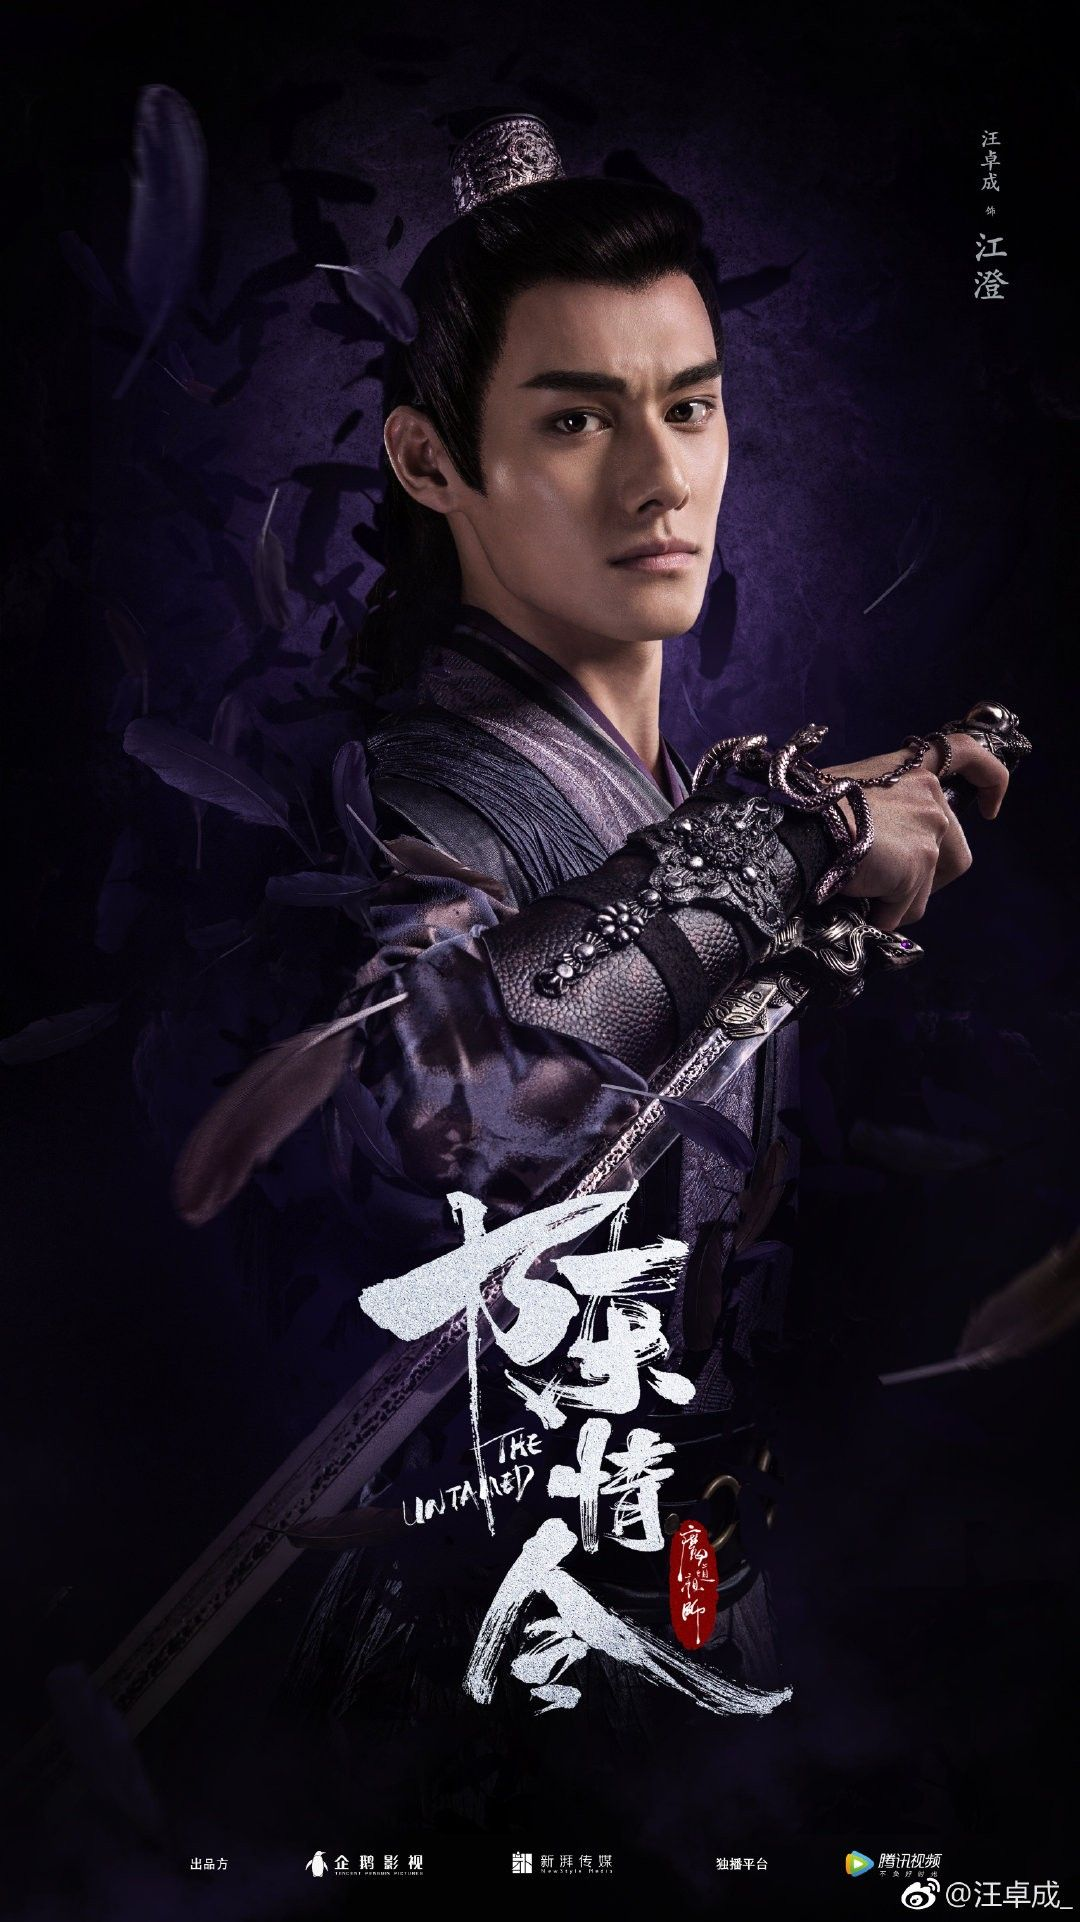 Pin by BW on 陈情令 ♥ THE UNTAMED Untamed, Drama, Live action